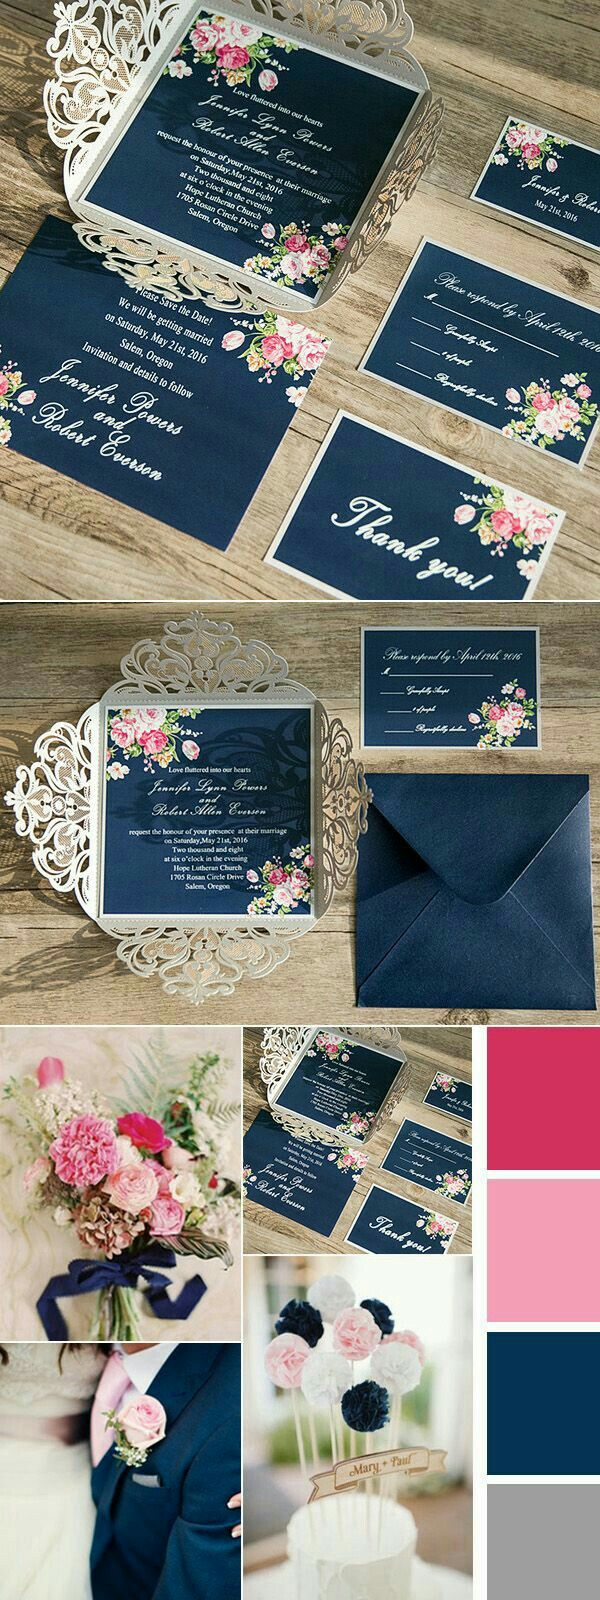 Shabby Chic Floral Navy Blue and Pink